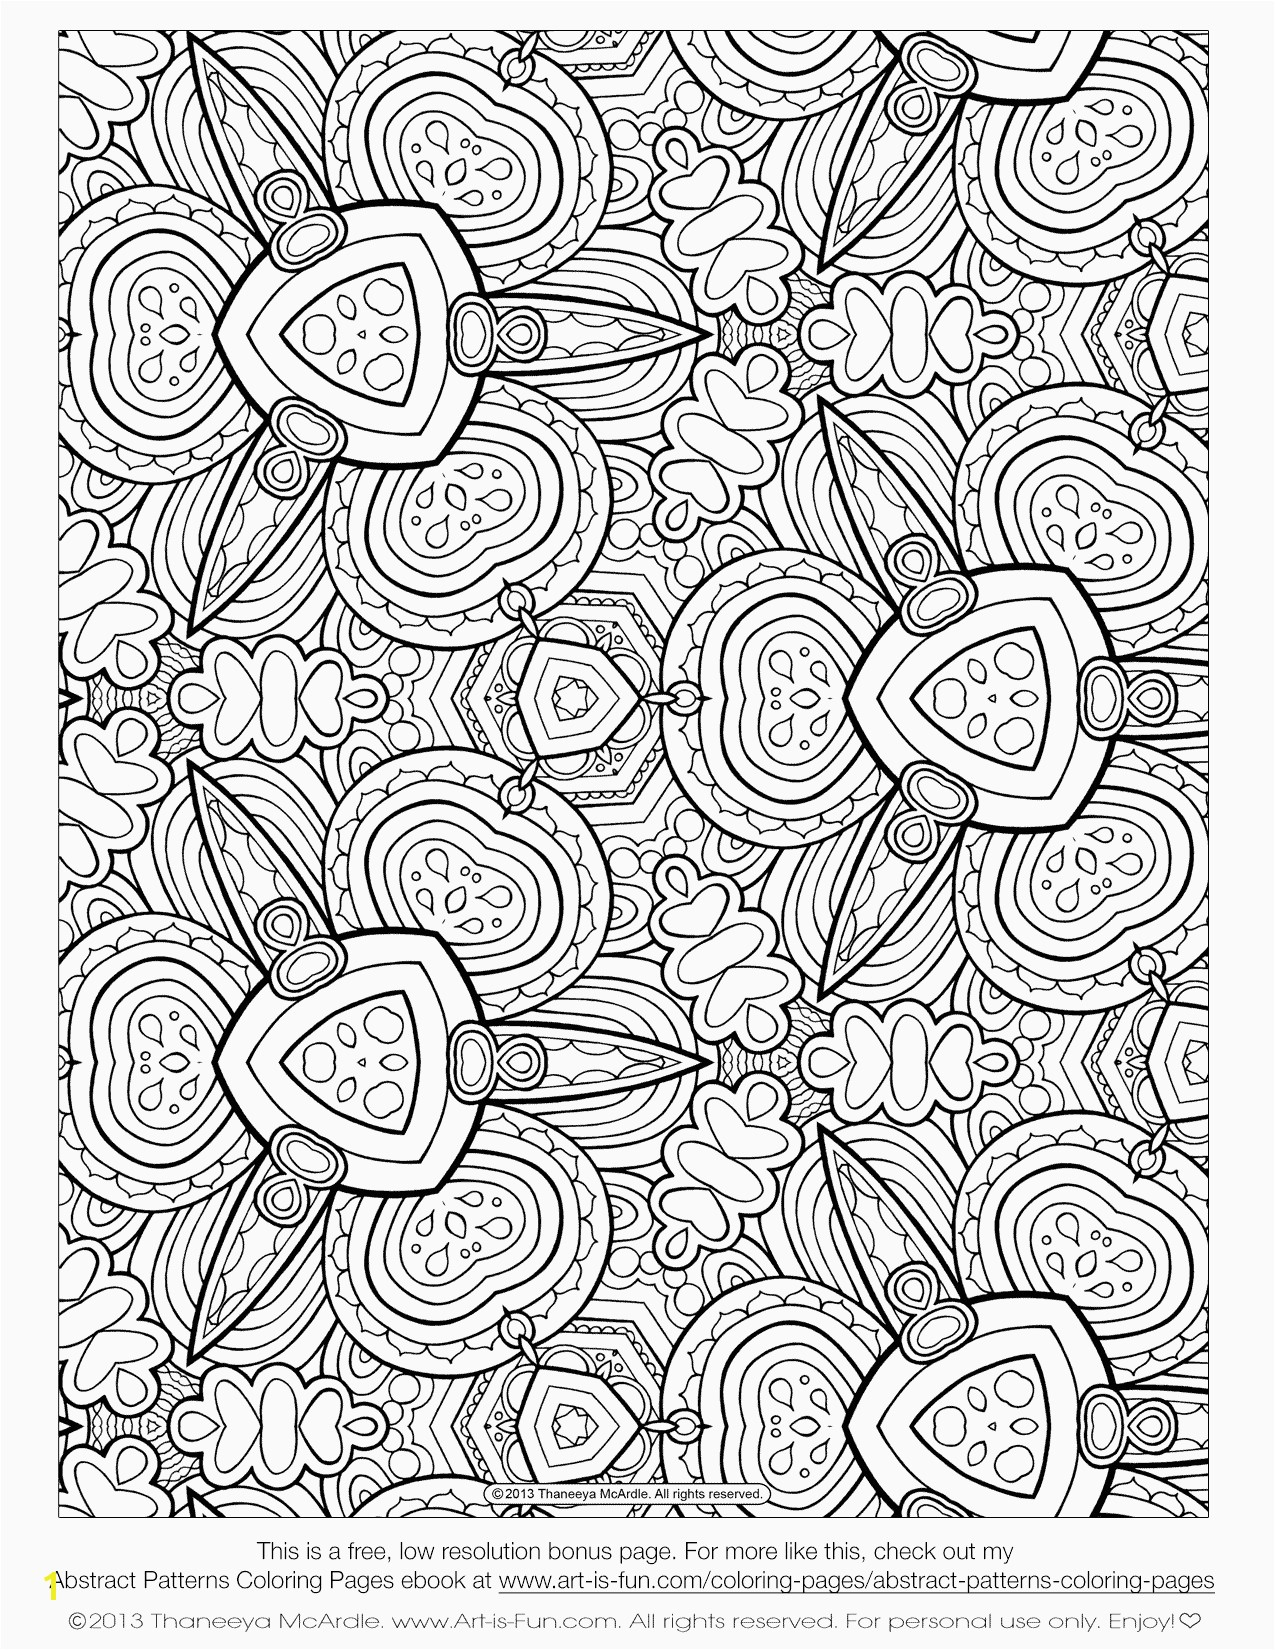 winter coloring sheet winter coloring pages adults best free coloring pages elegant crayola pages 0d archives se telefonyfo